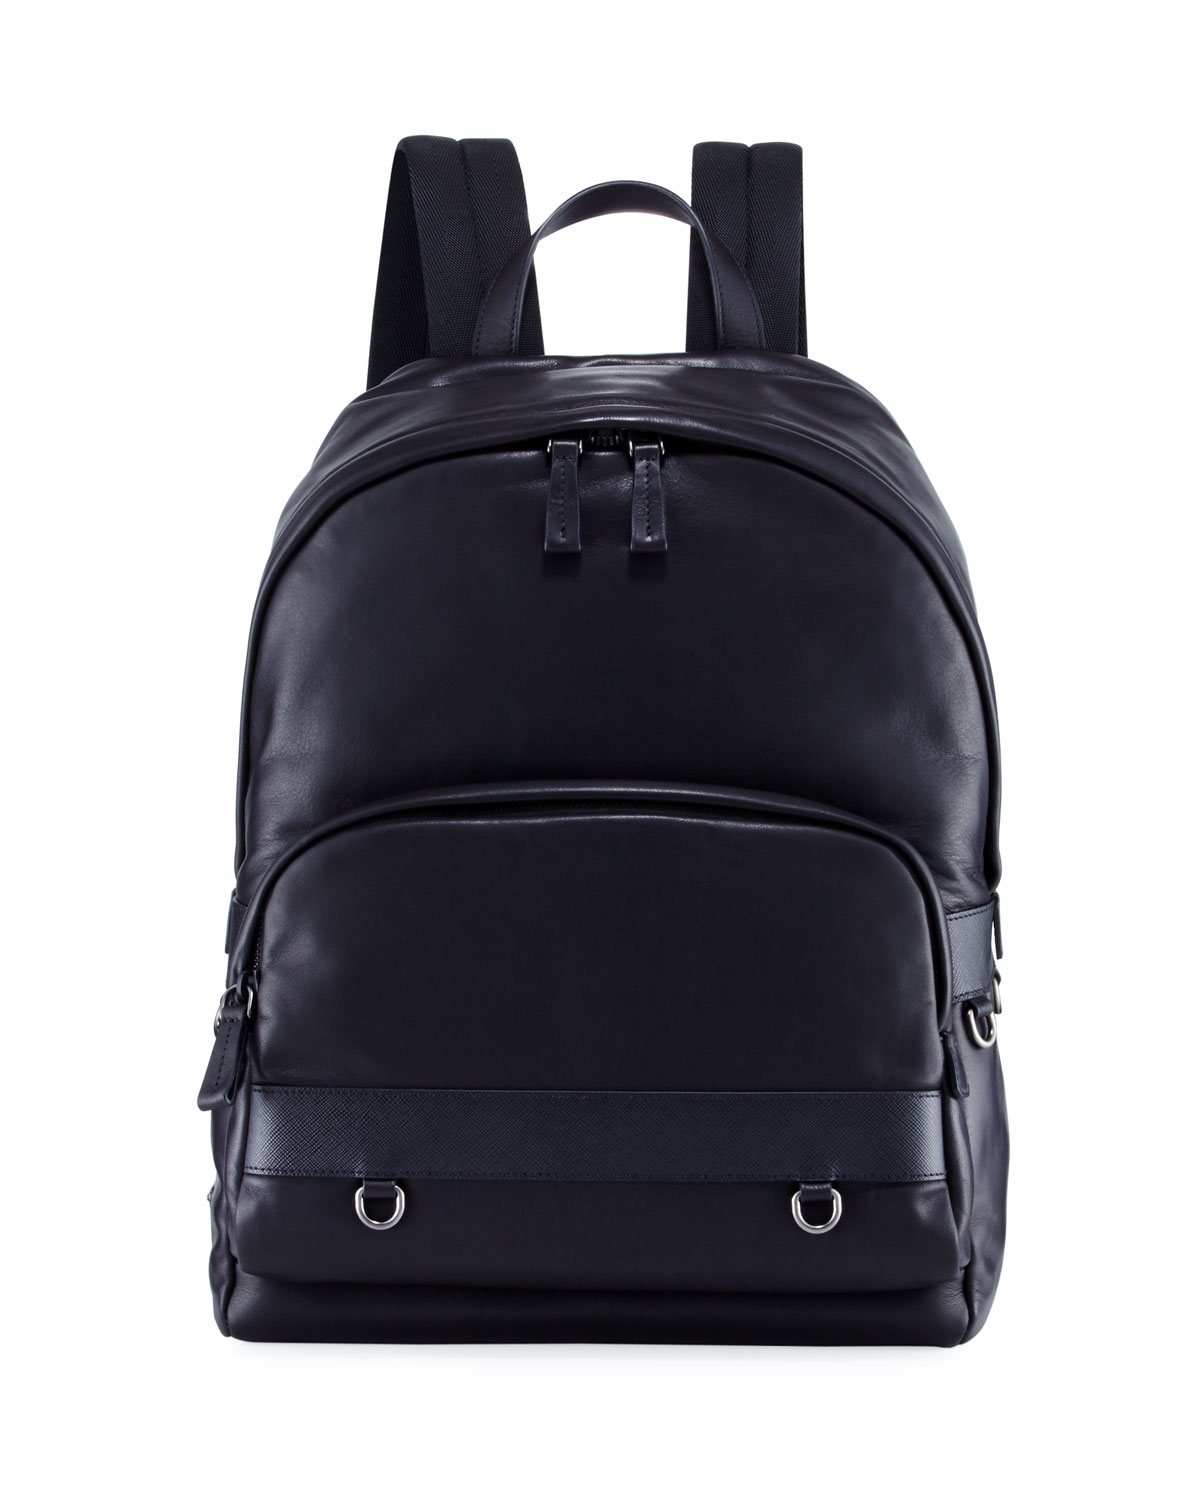 0a6447971815 Prada Classic Calf Leather Backpack | Neiman Marcus